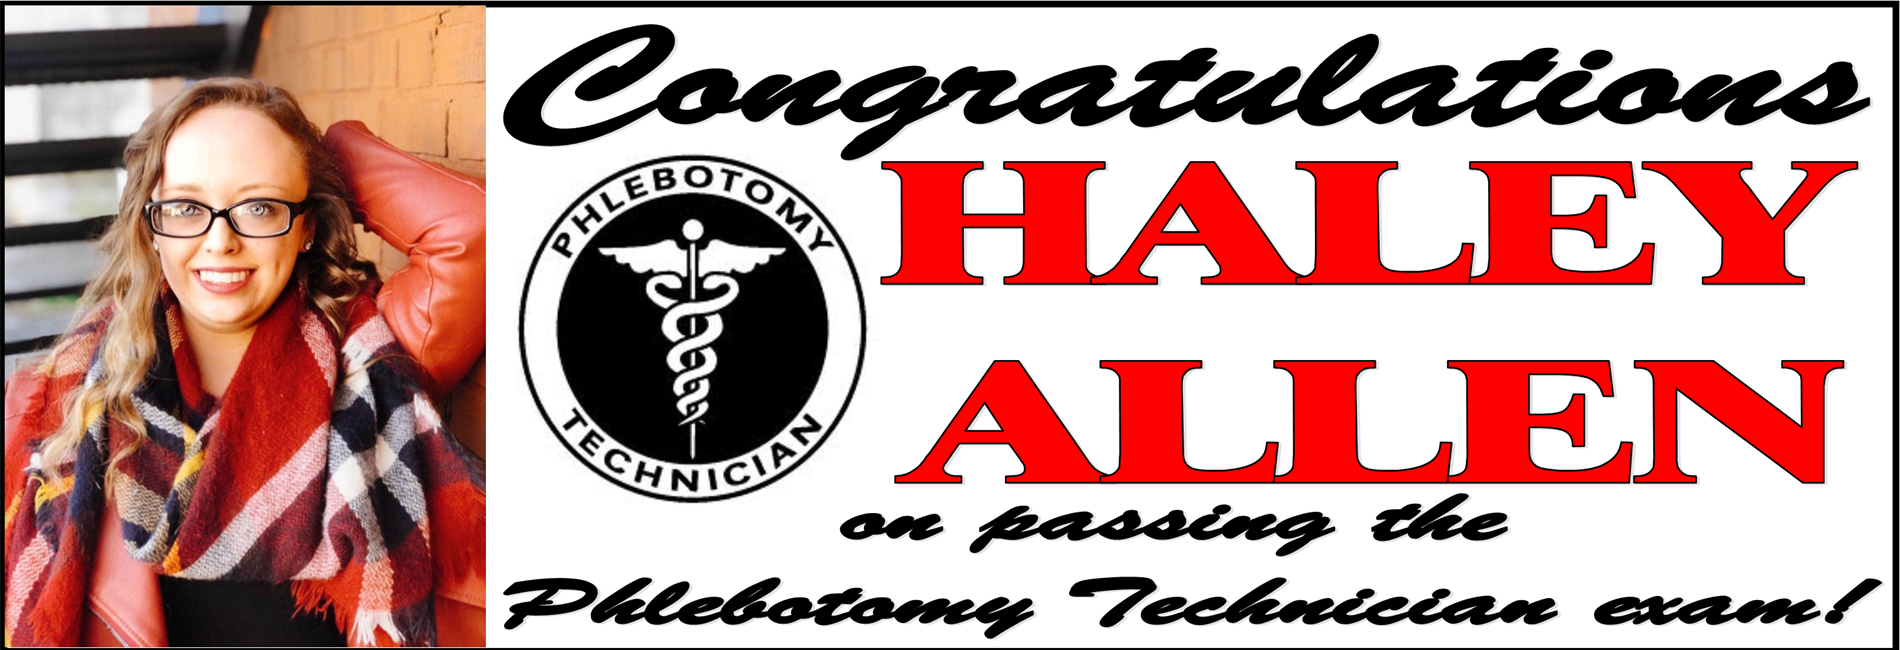 Congratulations to Haley Allen on passing the Phlebotomy Technician Exam.